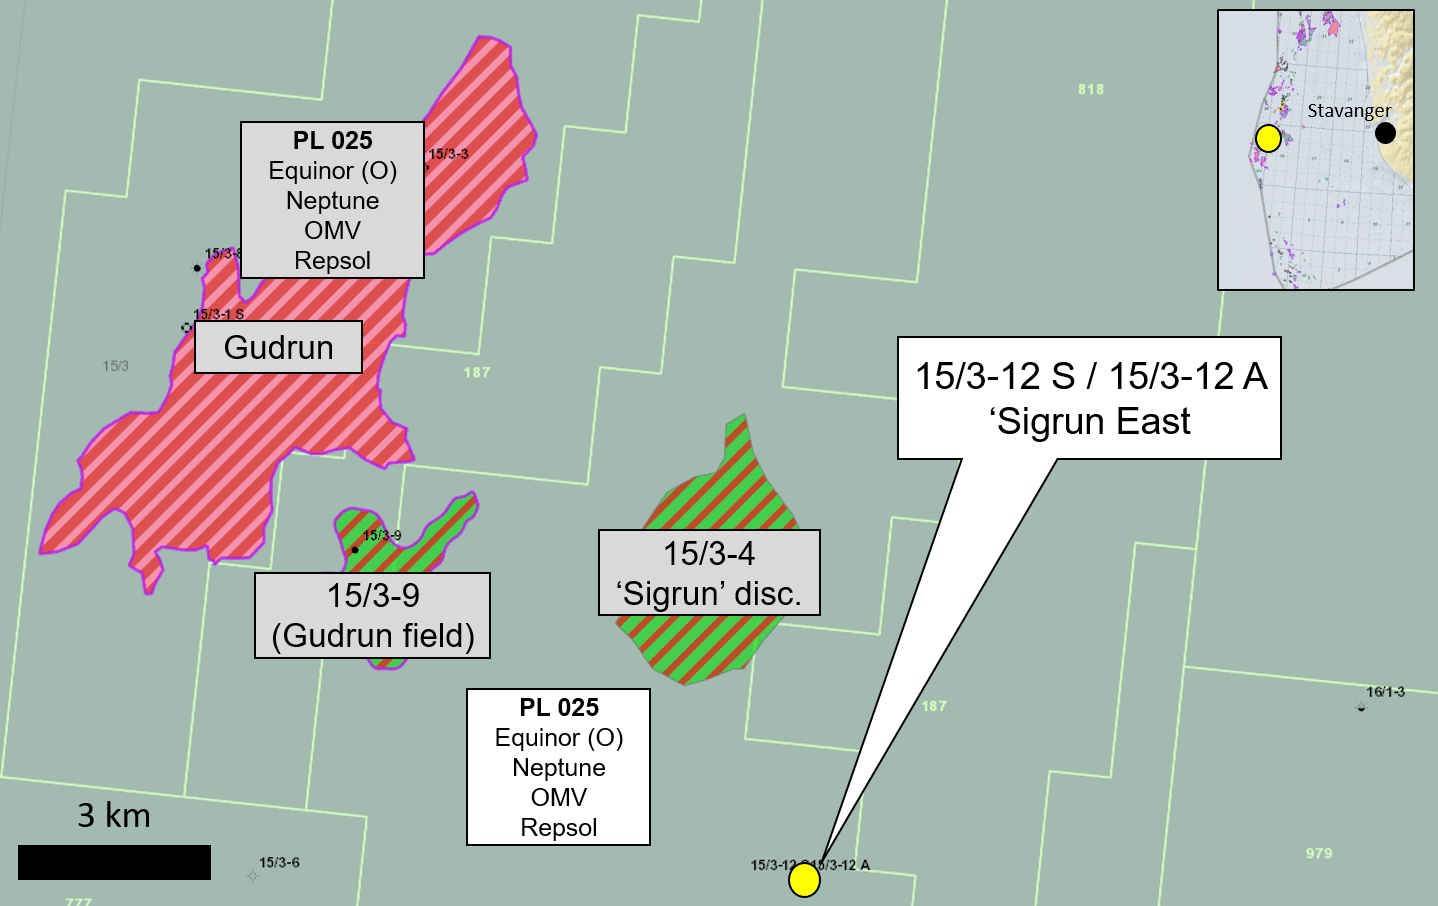 Small oil discovery in Sigrun East next to Gudrun